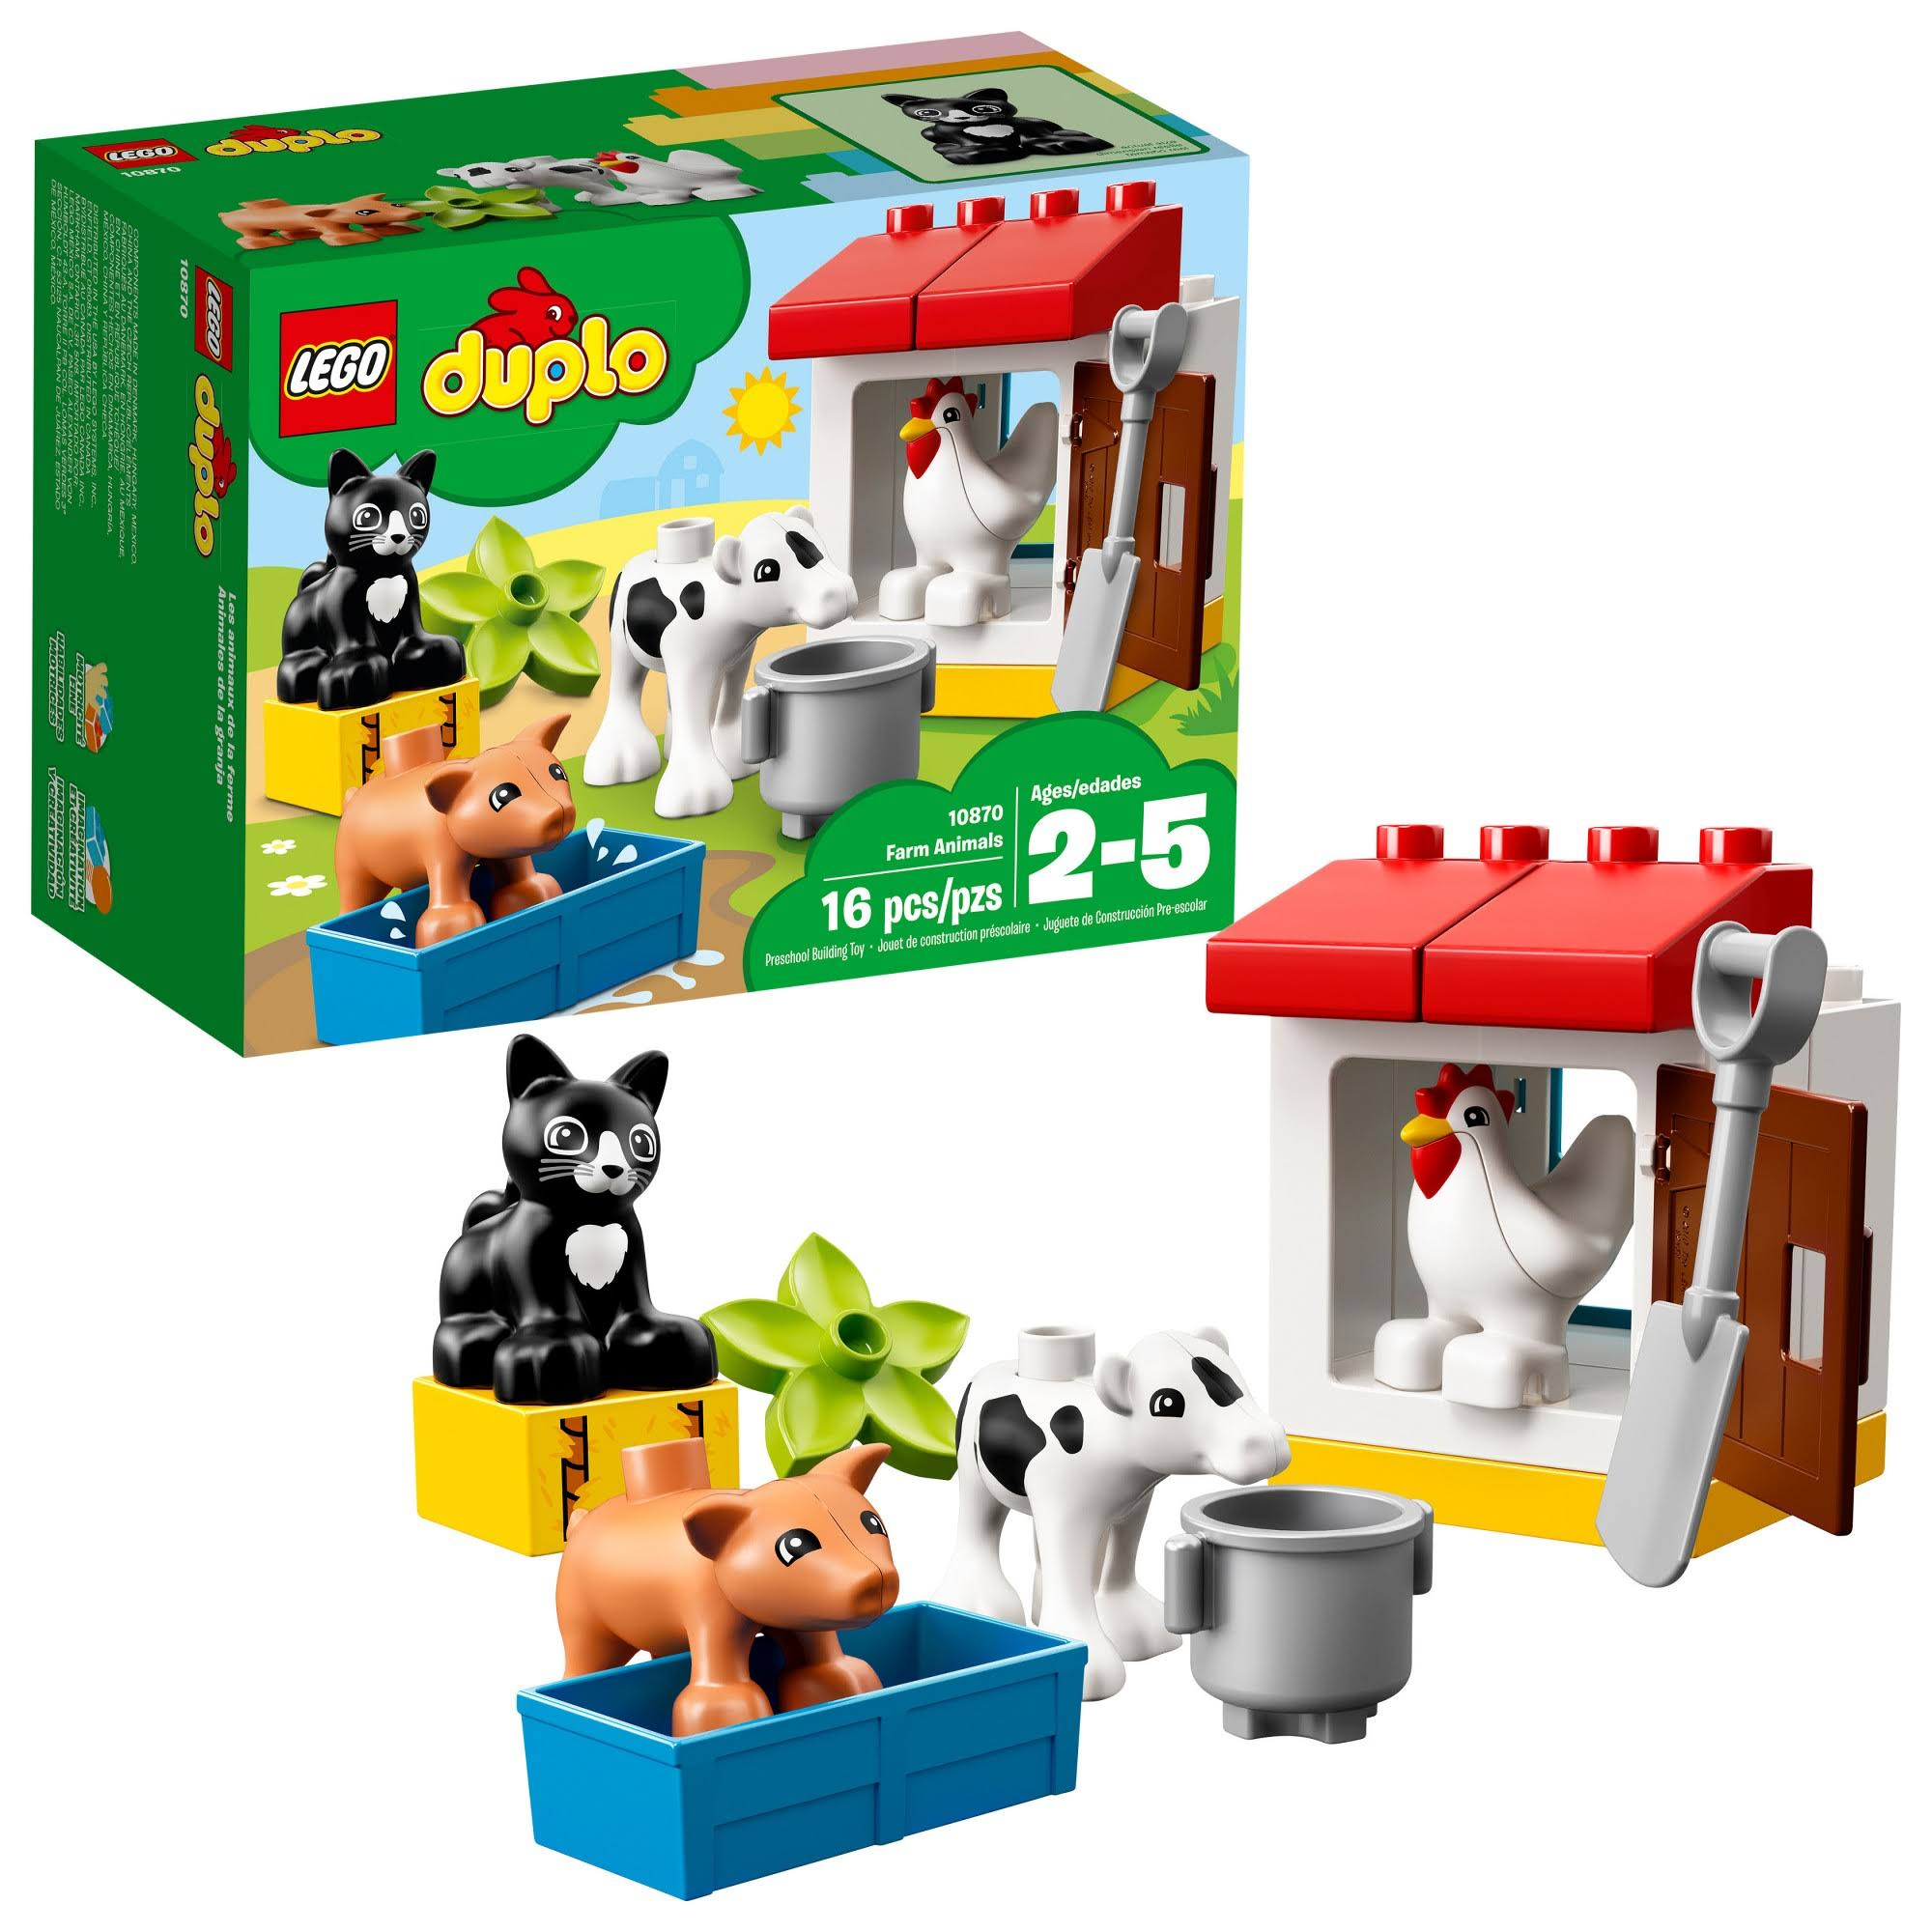 Lego 10870 Duplo Town Farm Animals Building Toy